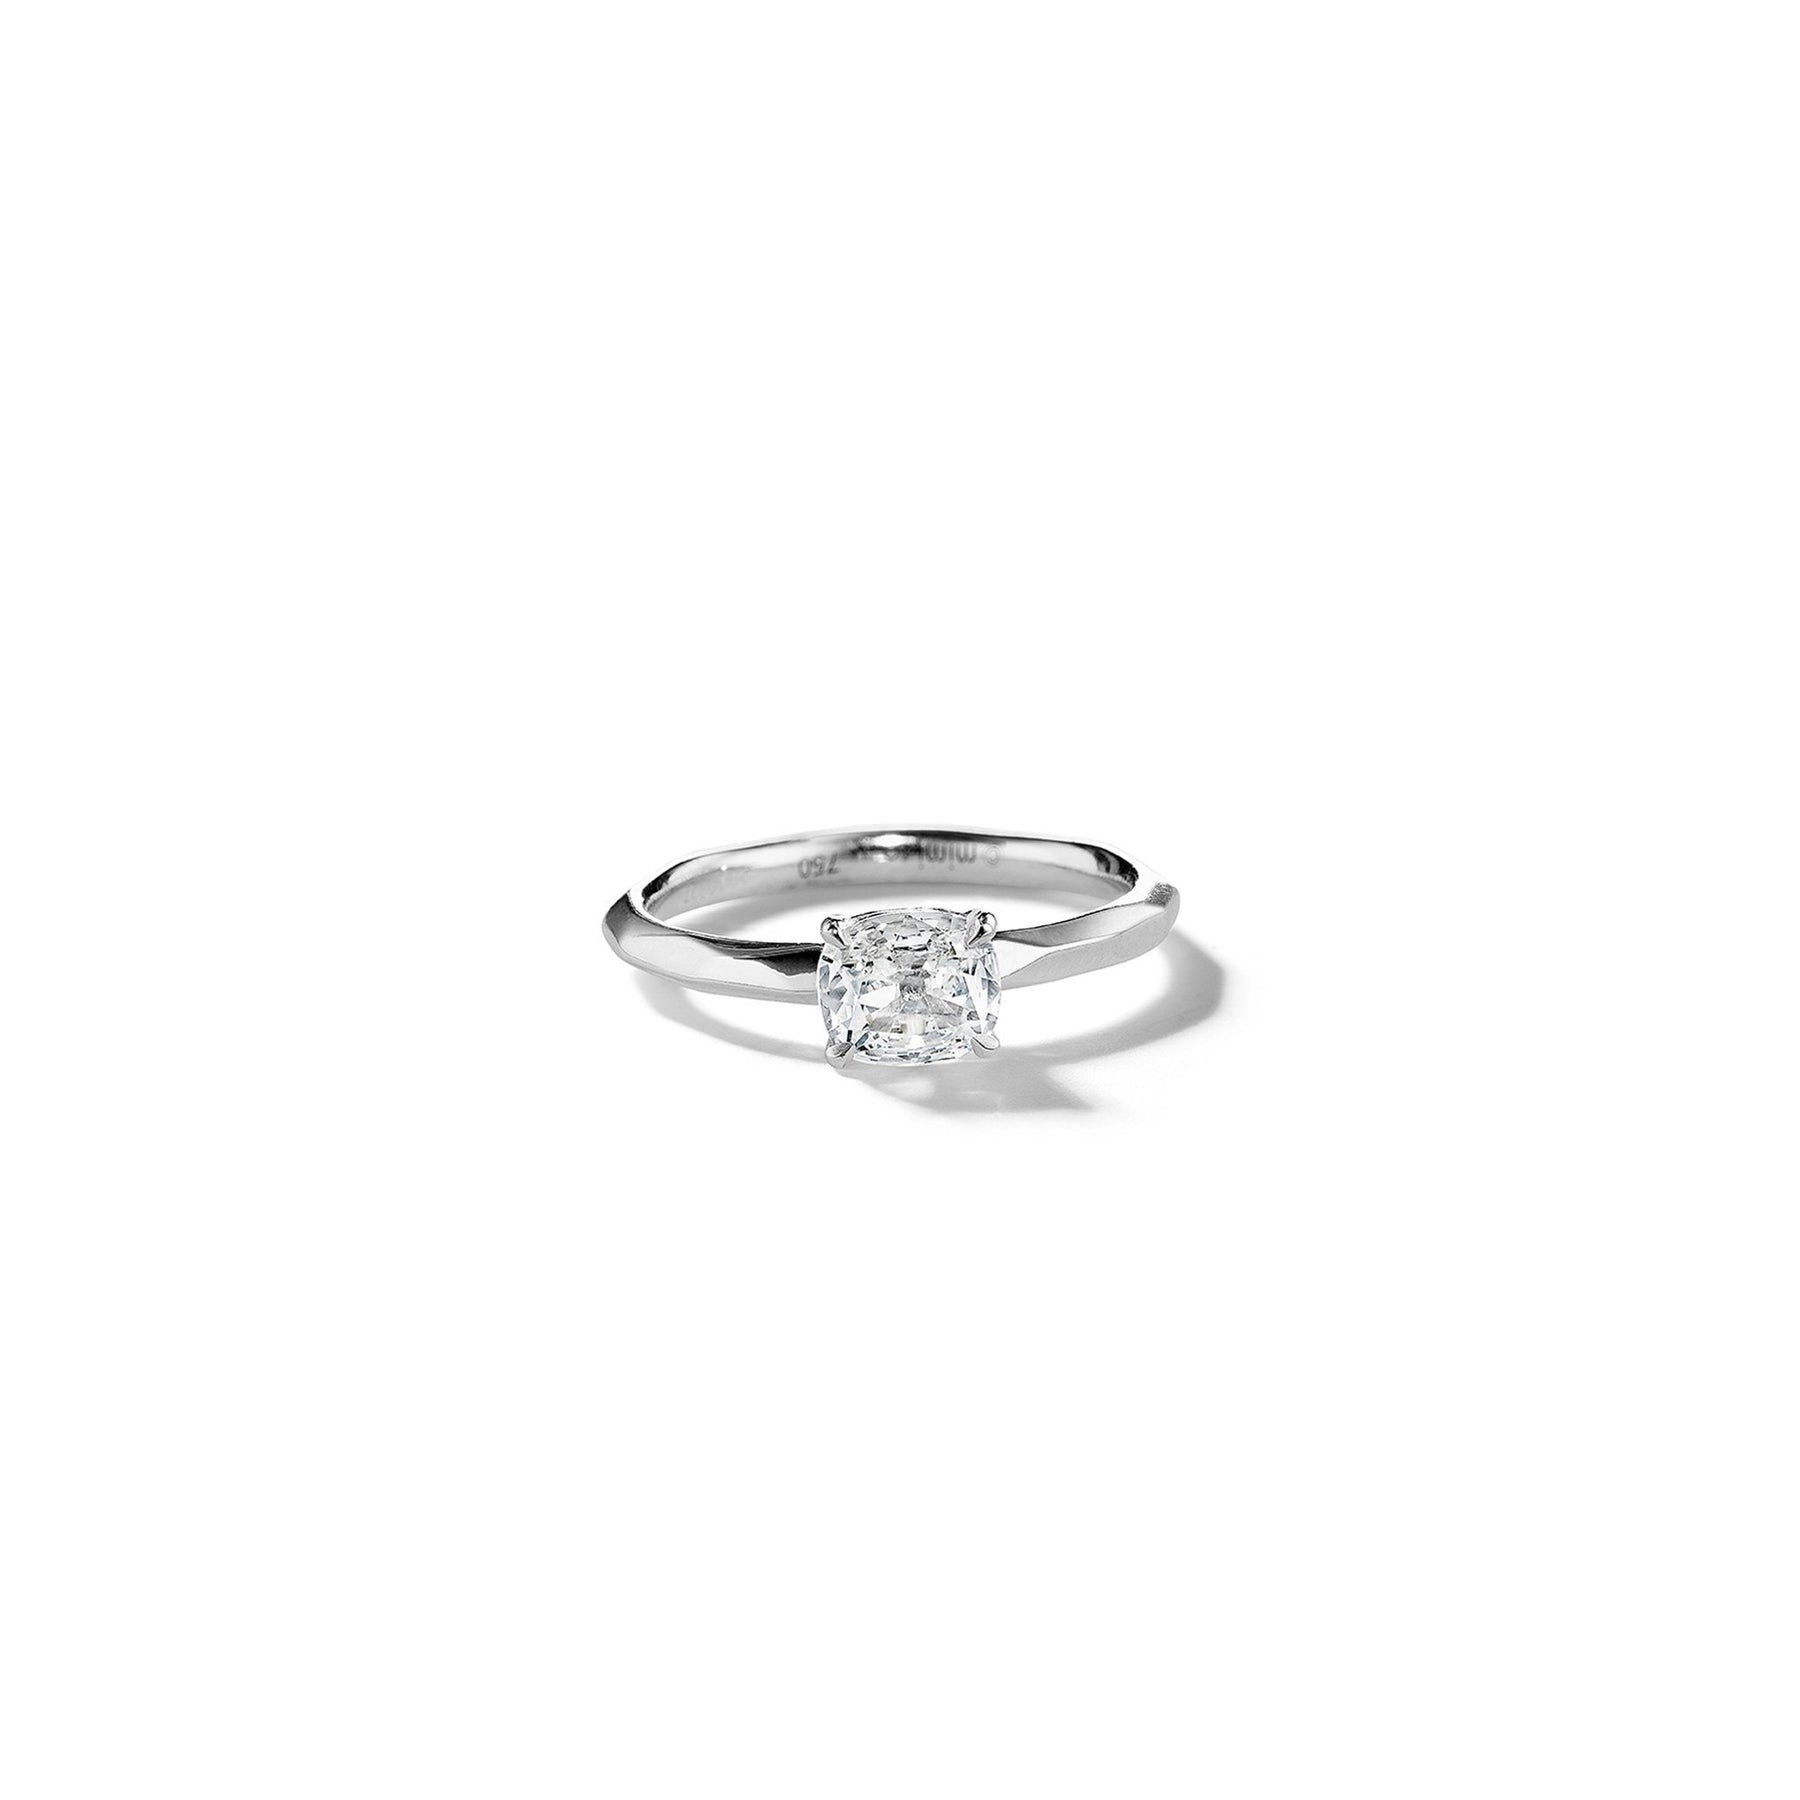 Mimi-So-Bridal-Jackson-Solitaire-Engagement-Ring_18k White Gold